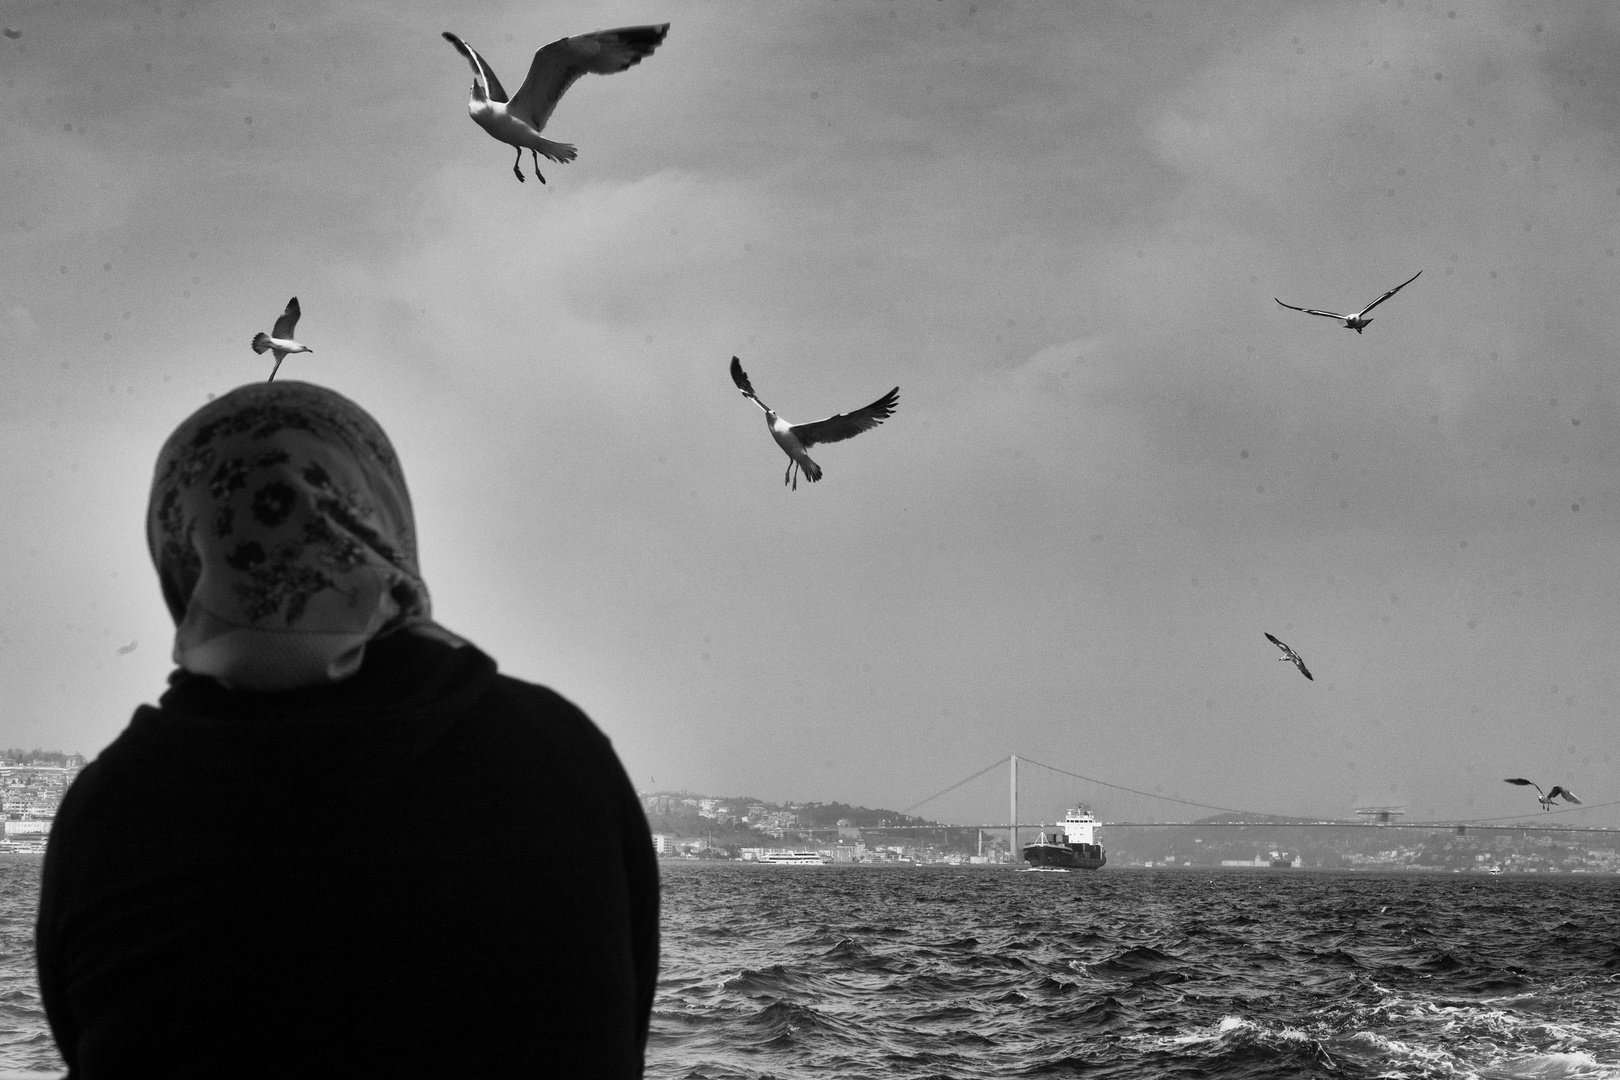 Istanbul, Bosphorus, the border between Europe and Asia